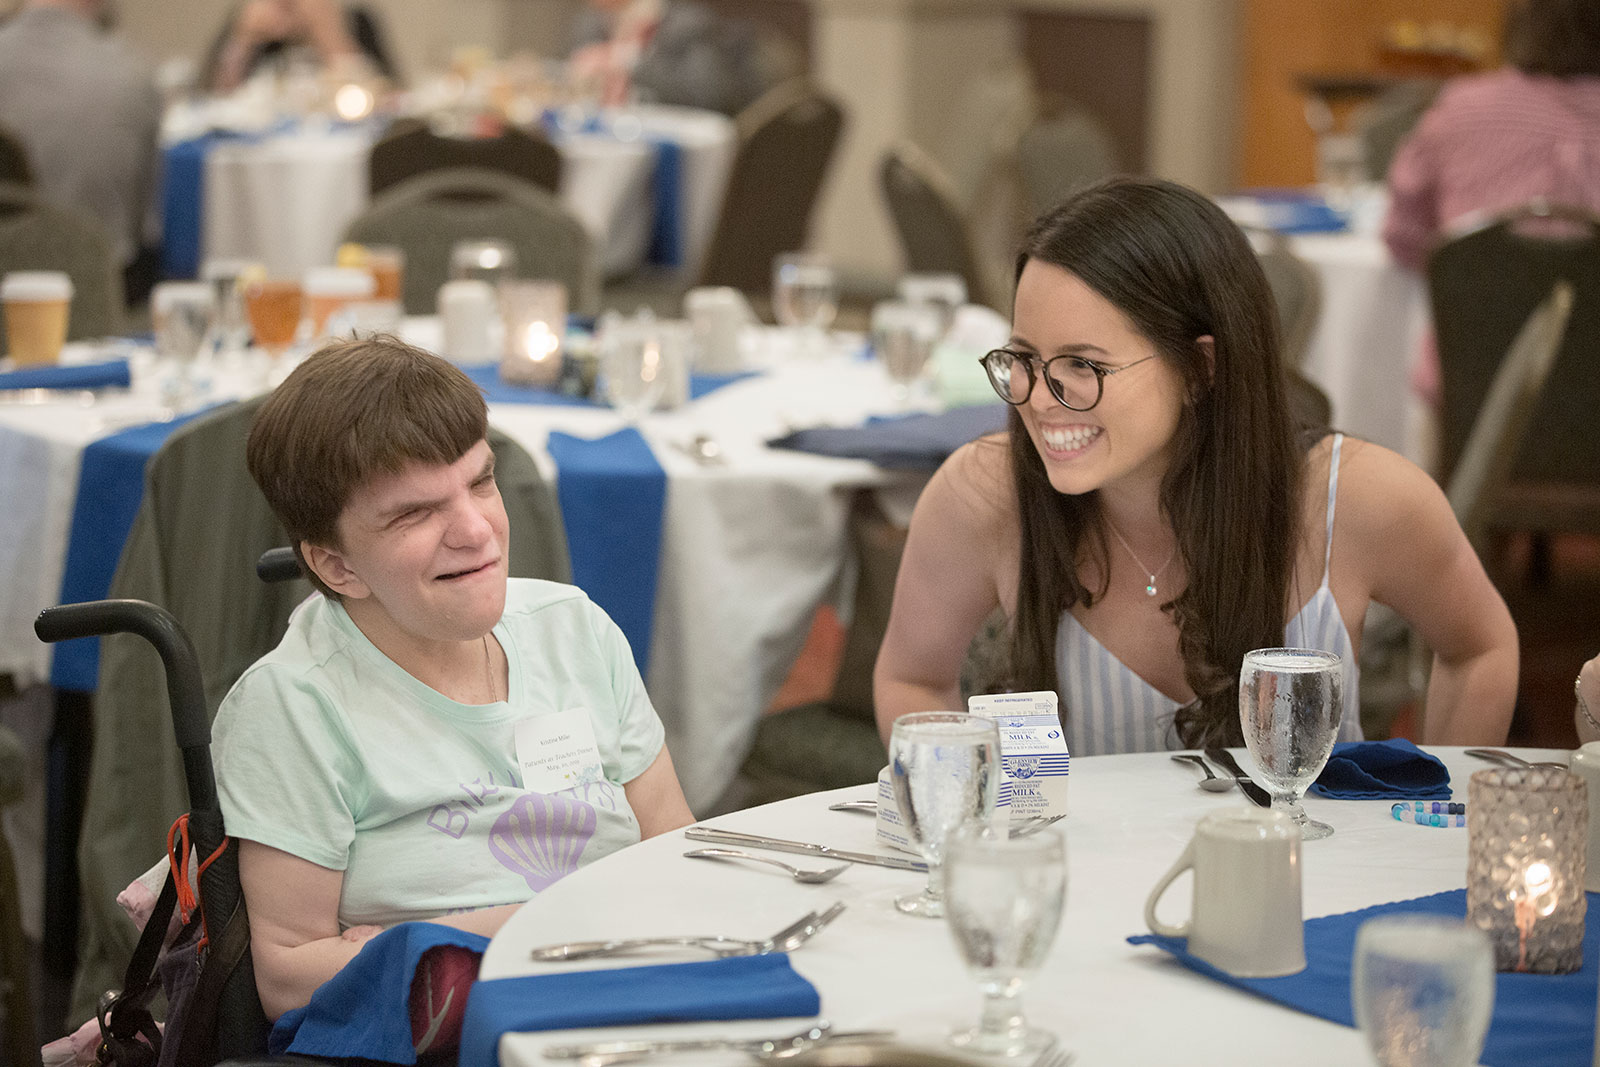 A young woman is seen talking happily with a woman in a wheelchair sitting at a table with her.